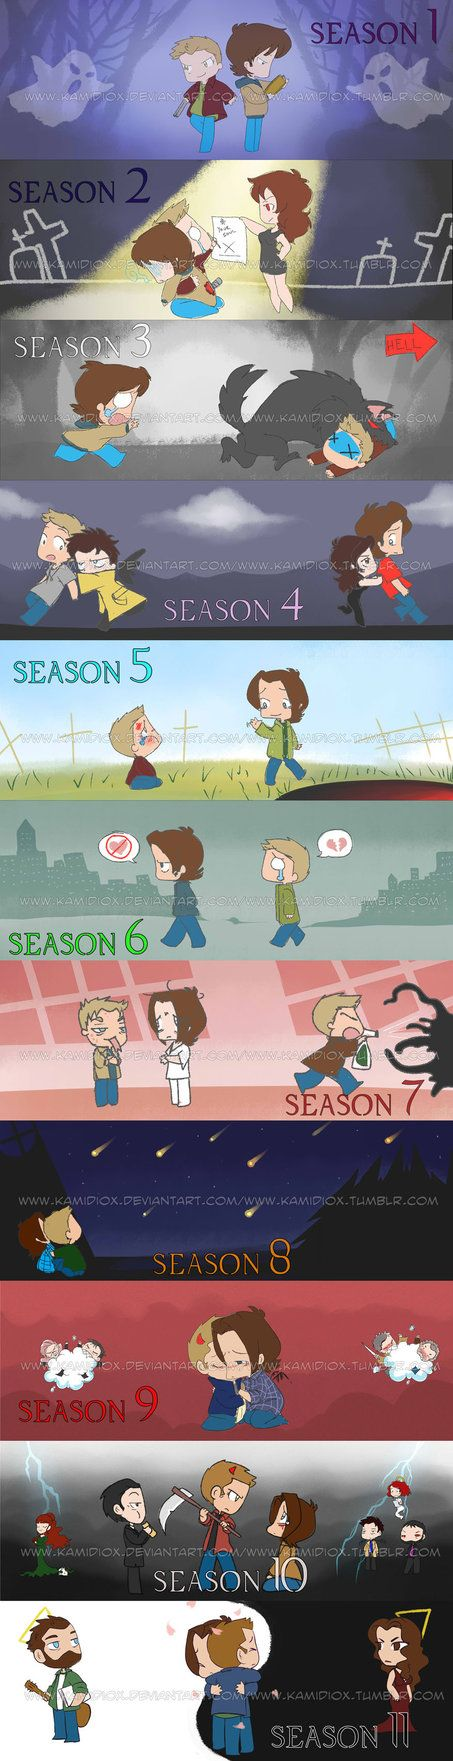 Supernatural 11 Seasons by KamiDiox